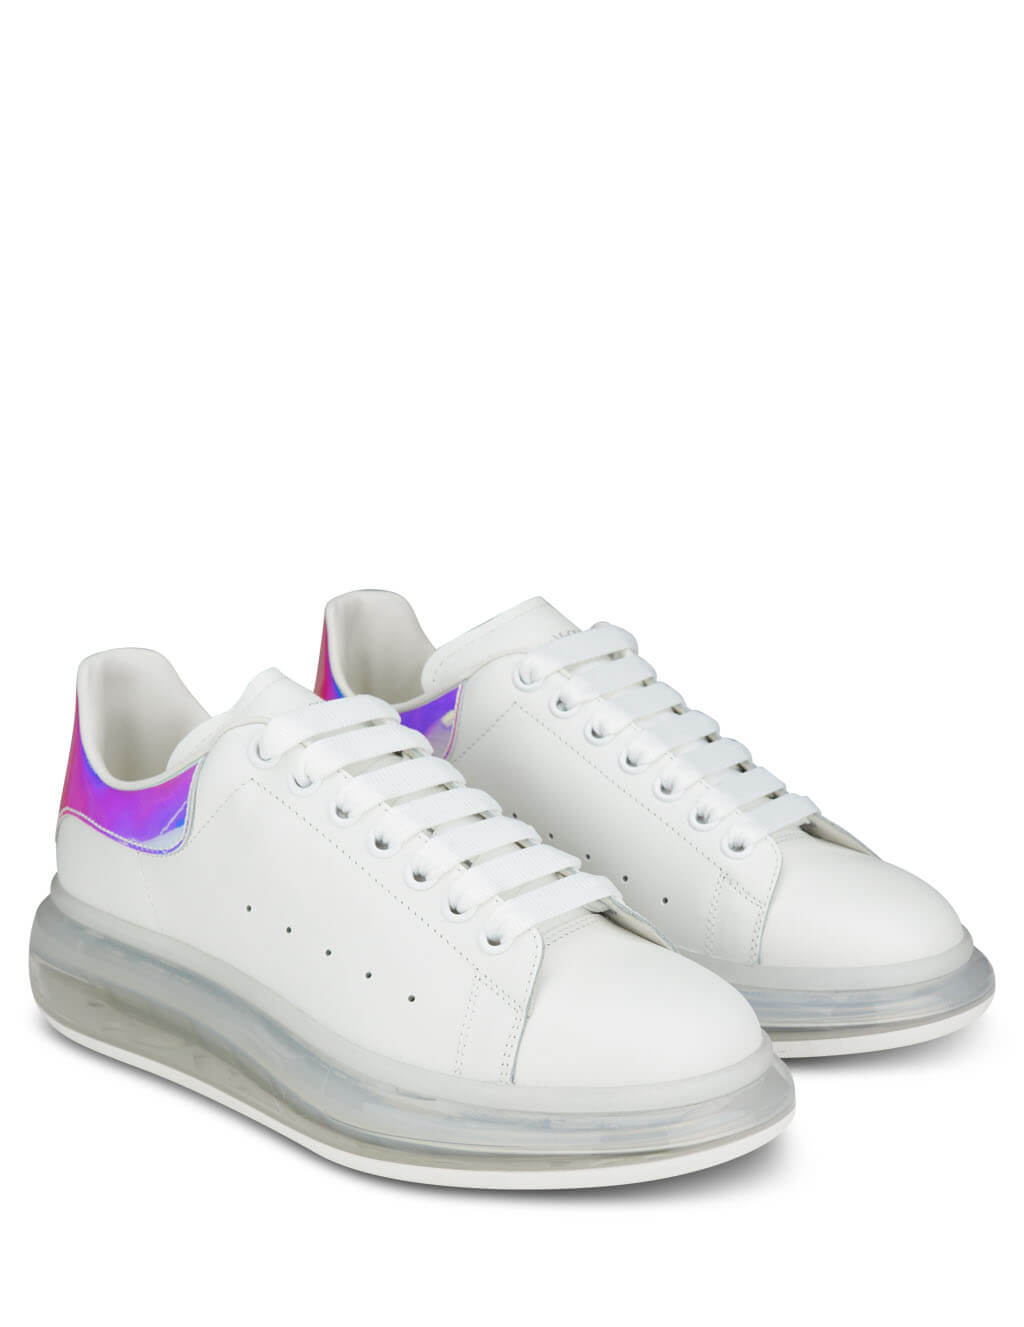 Men's White and Iridescent Silver Alexander McQueen Transparent Sole Oversized Sneakers 610812WHXM29071